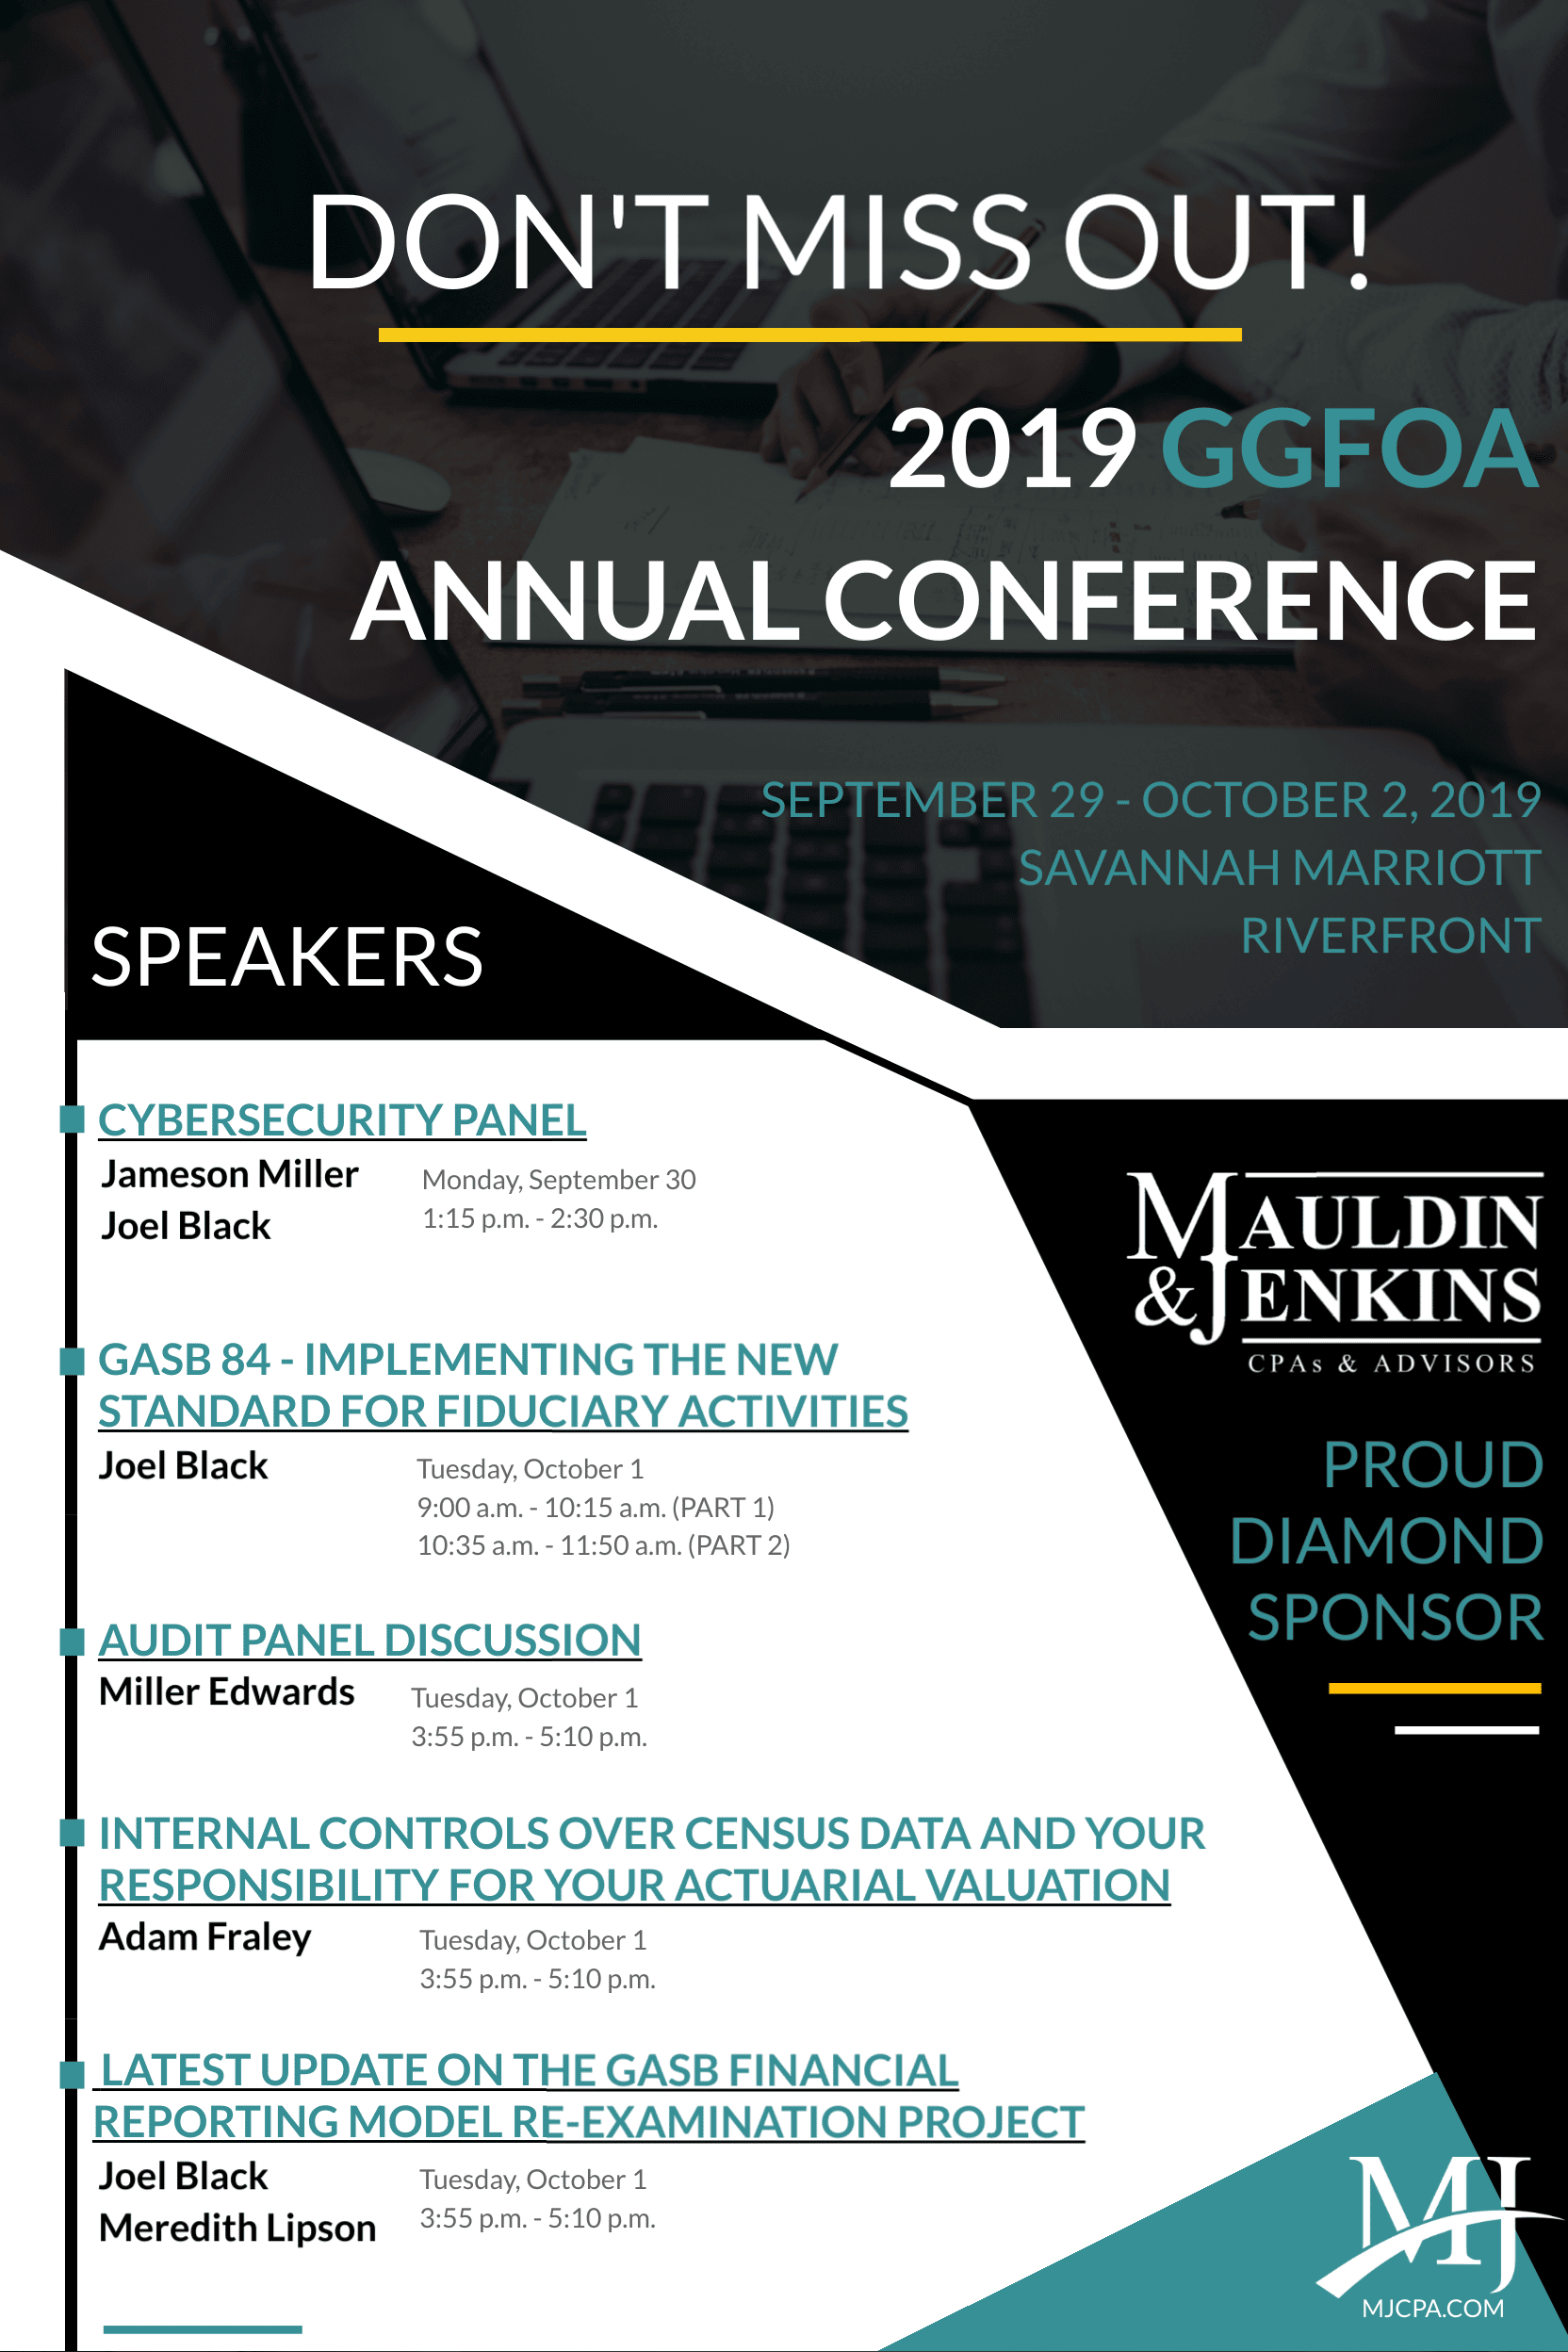 Don't Miss Us at The 2019 GGFOA Annual Conference